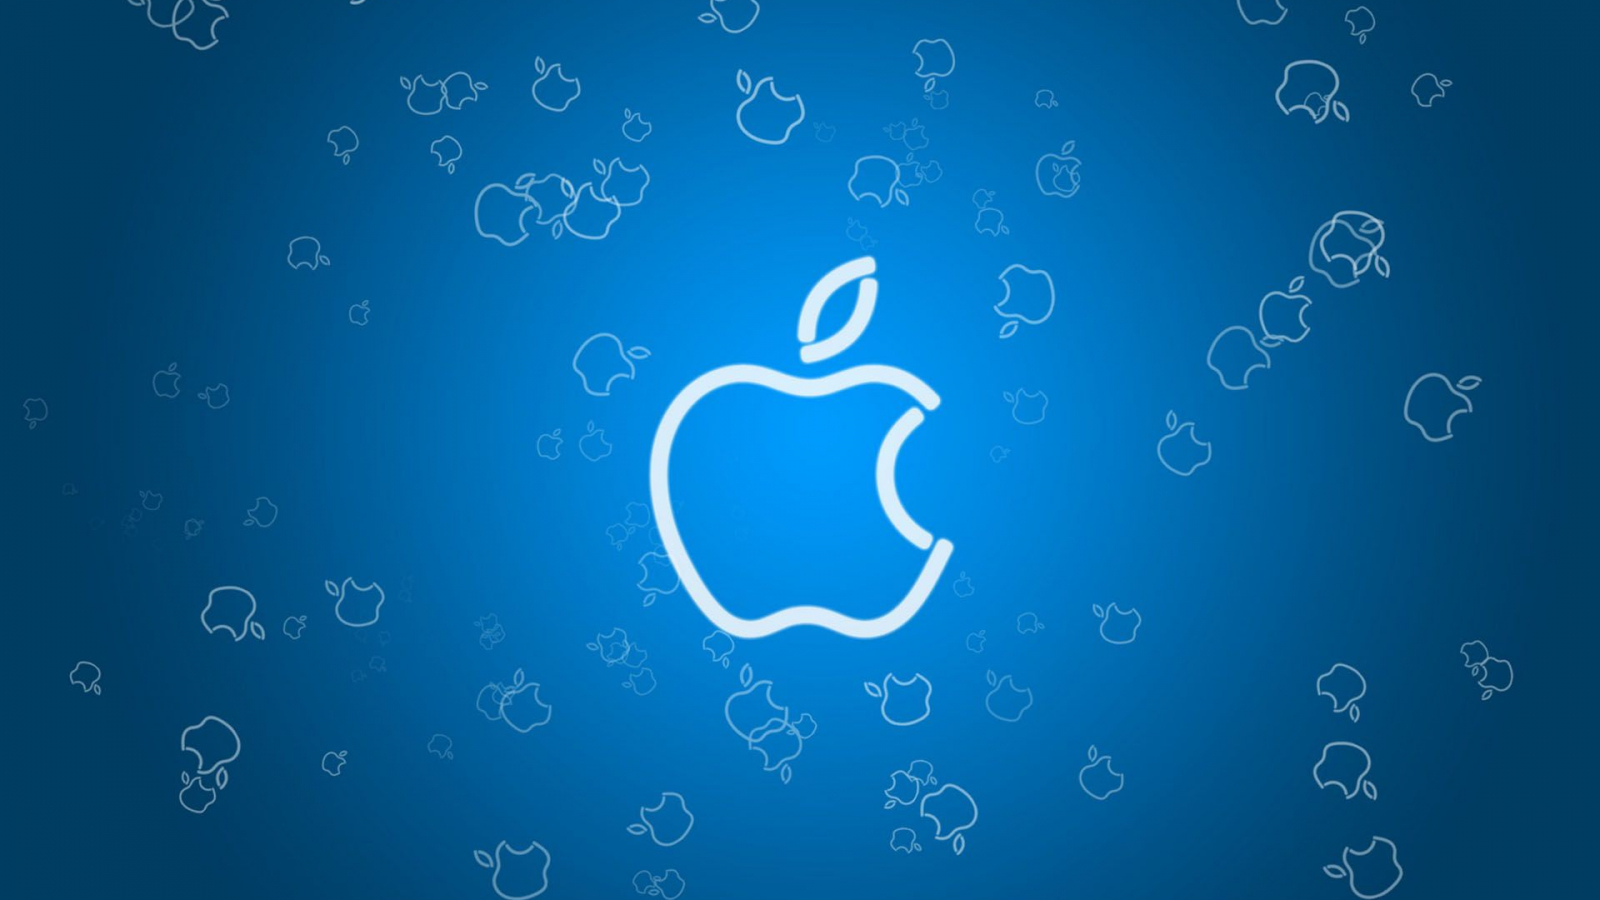 Free Download Apple Mac Background Wallpaper Ios 11 Apple Logo Wallpaper 1920x1200 For Your Desktop Mobile Tablet Explore 59 Cool Wallpapers For Mac Best Wallpapers For Mac Mac Lion